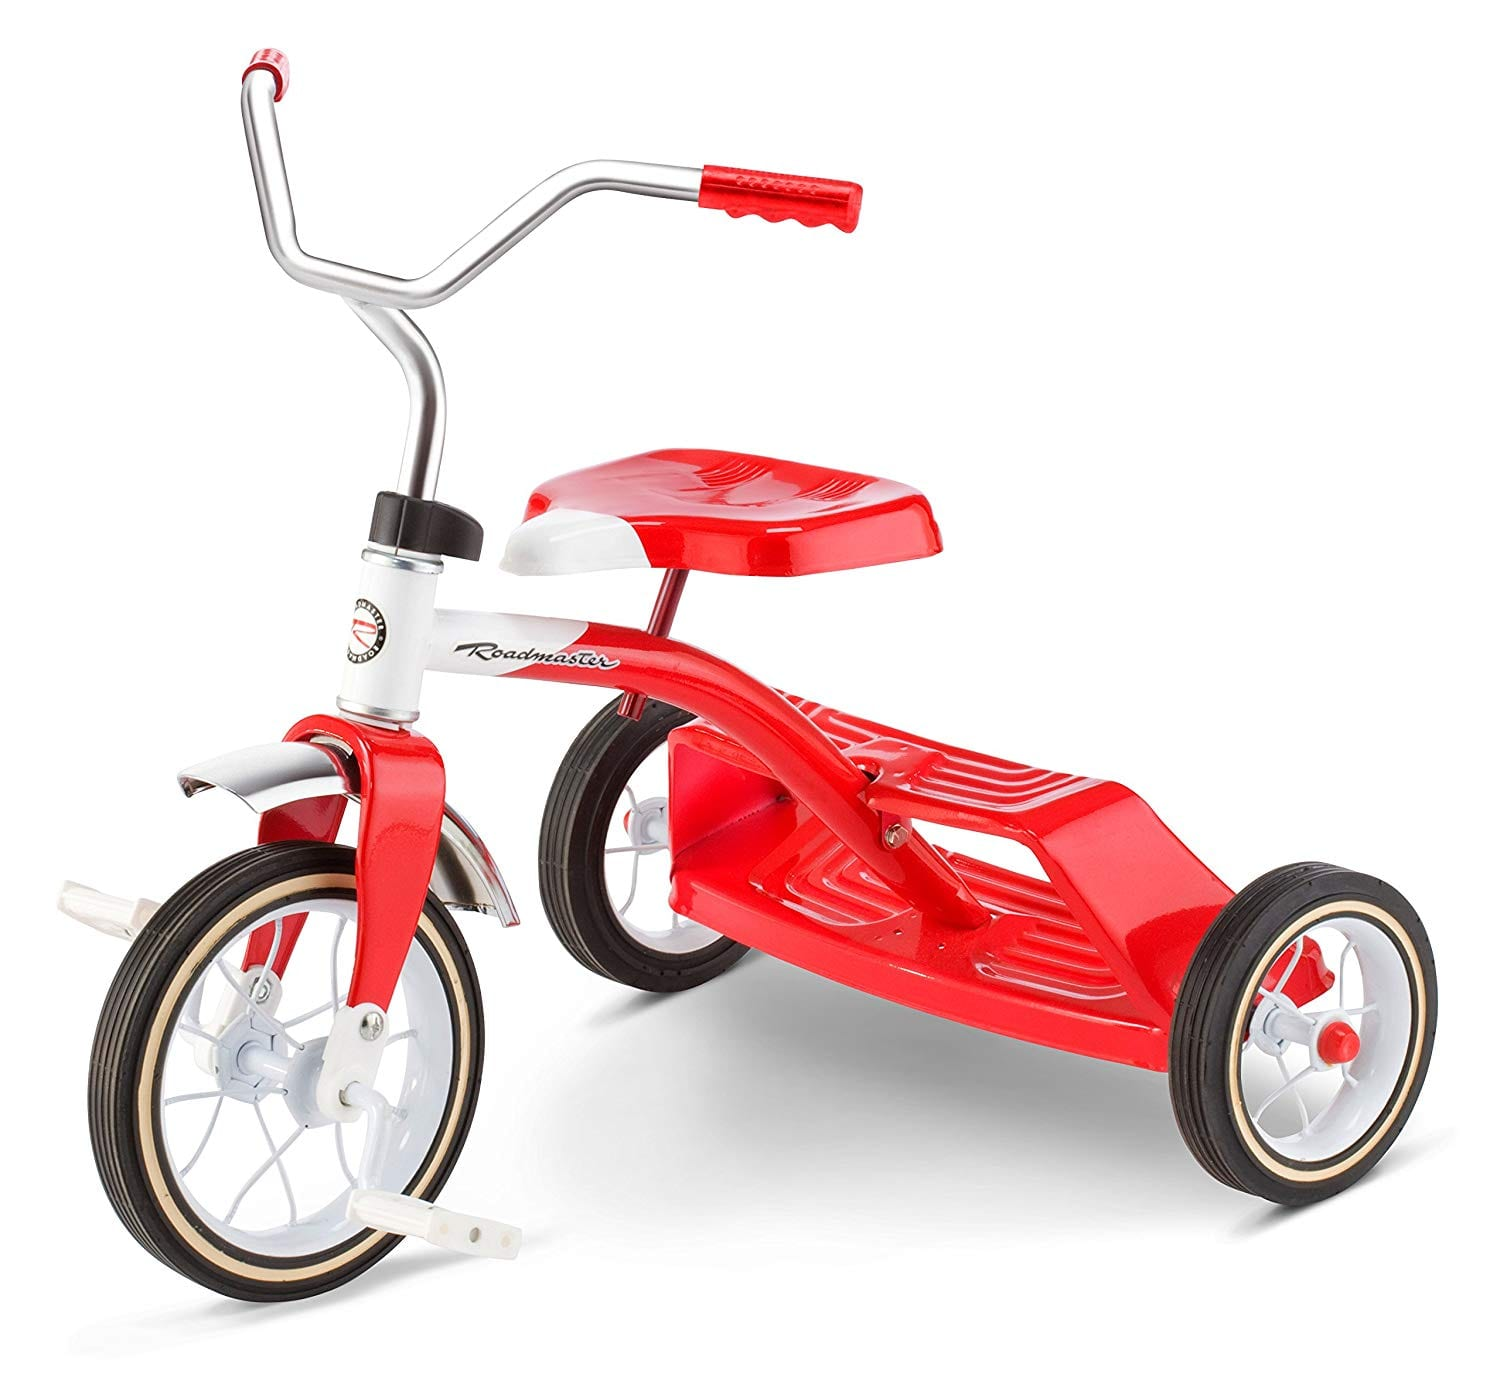 Road Master Duo Deck 10-inch Tricycle